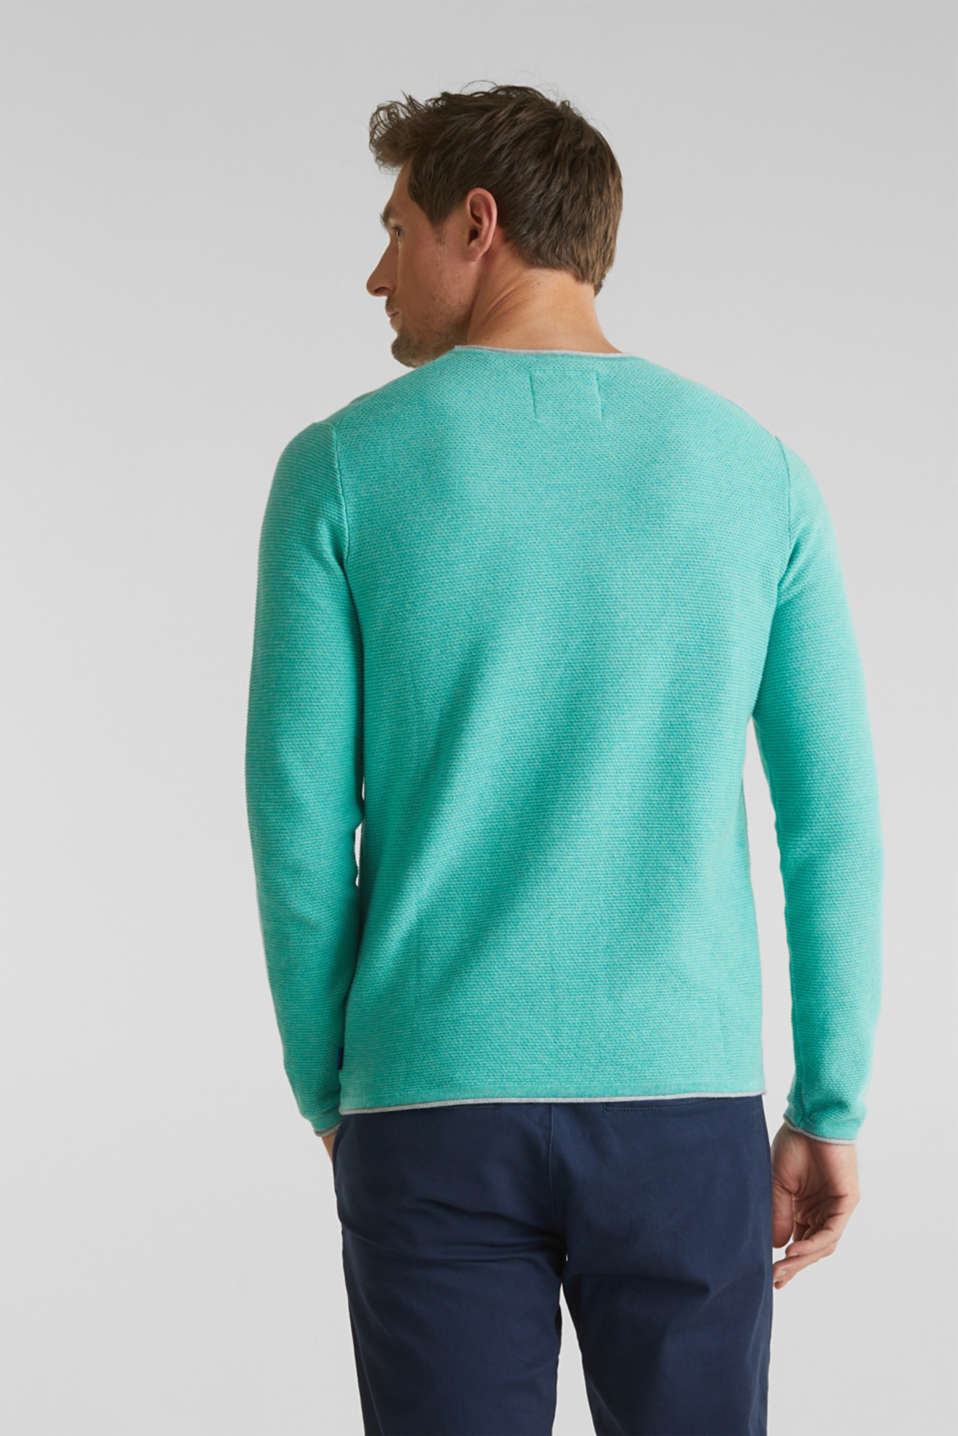 Textured jumper made of 100% cotton, LIGHT AQUA GREEN 5, detail image number 3